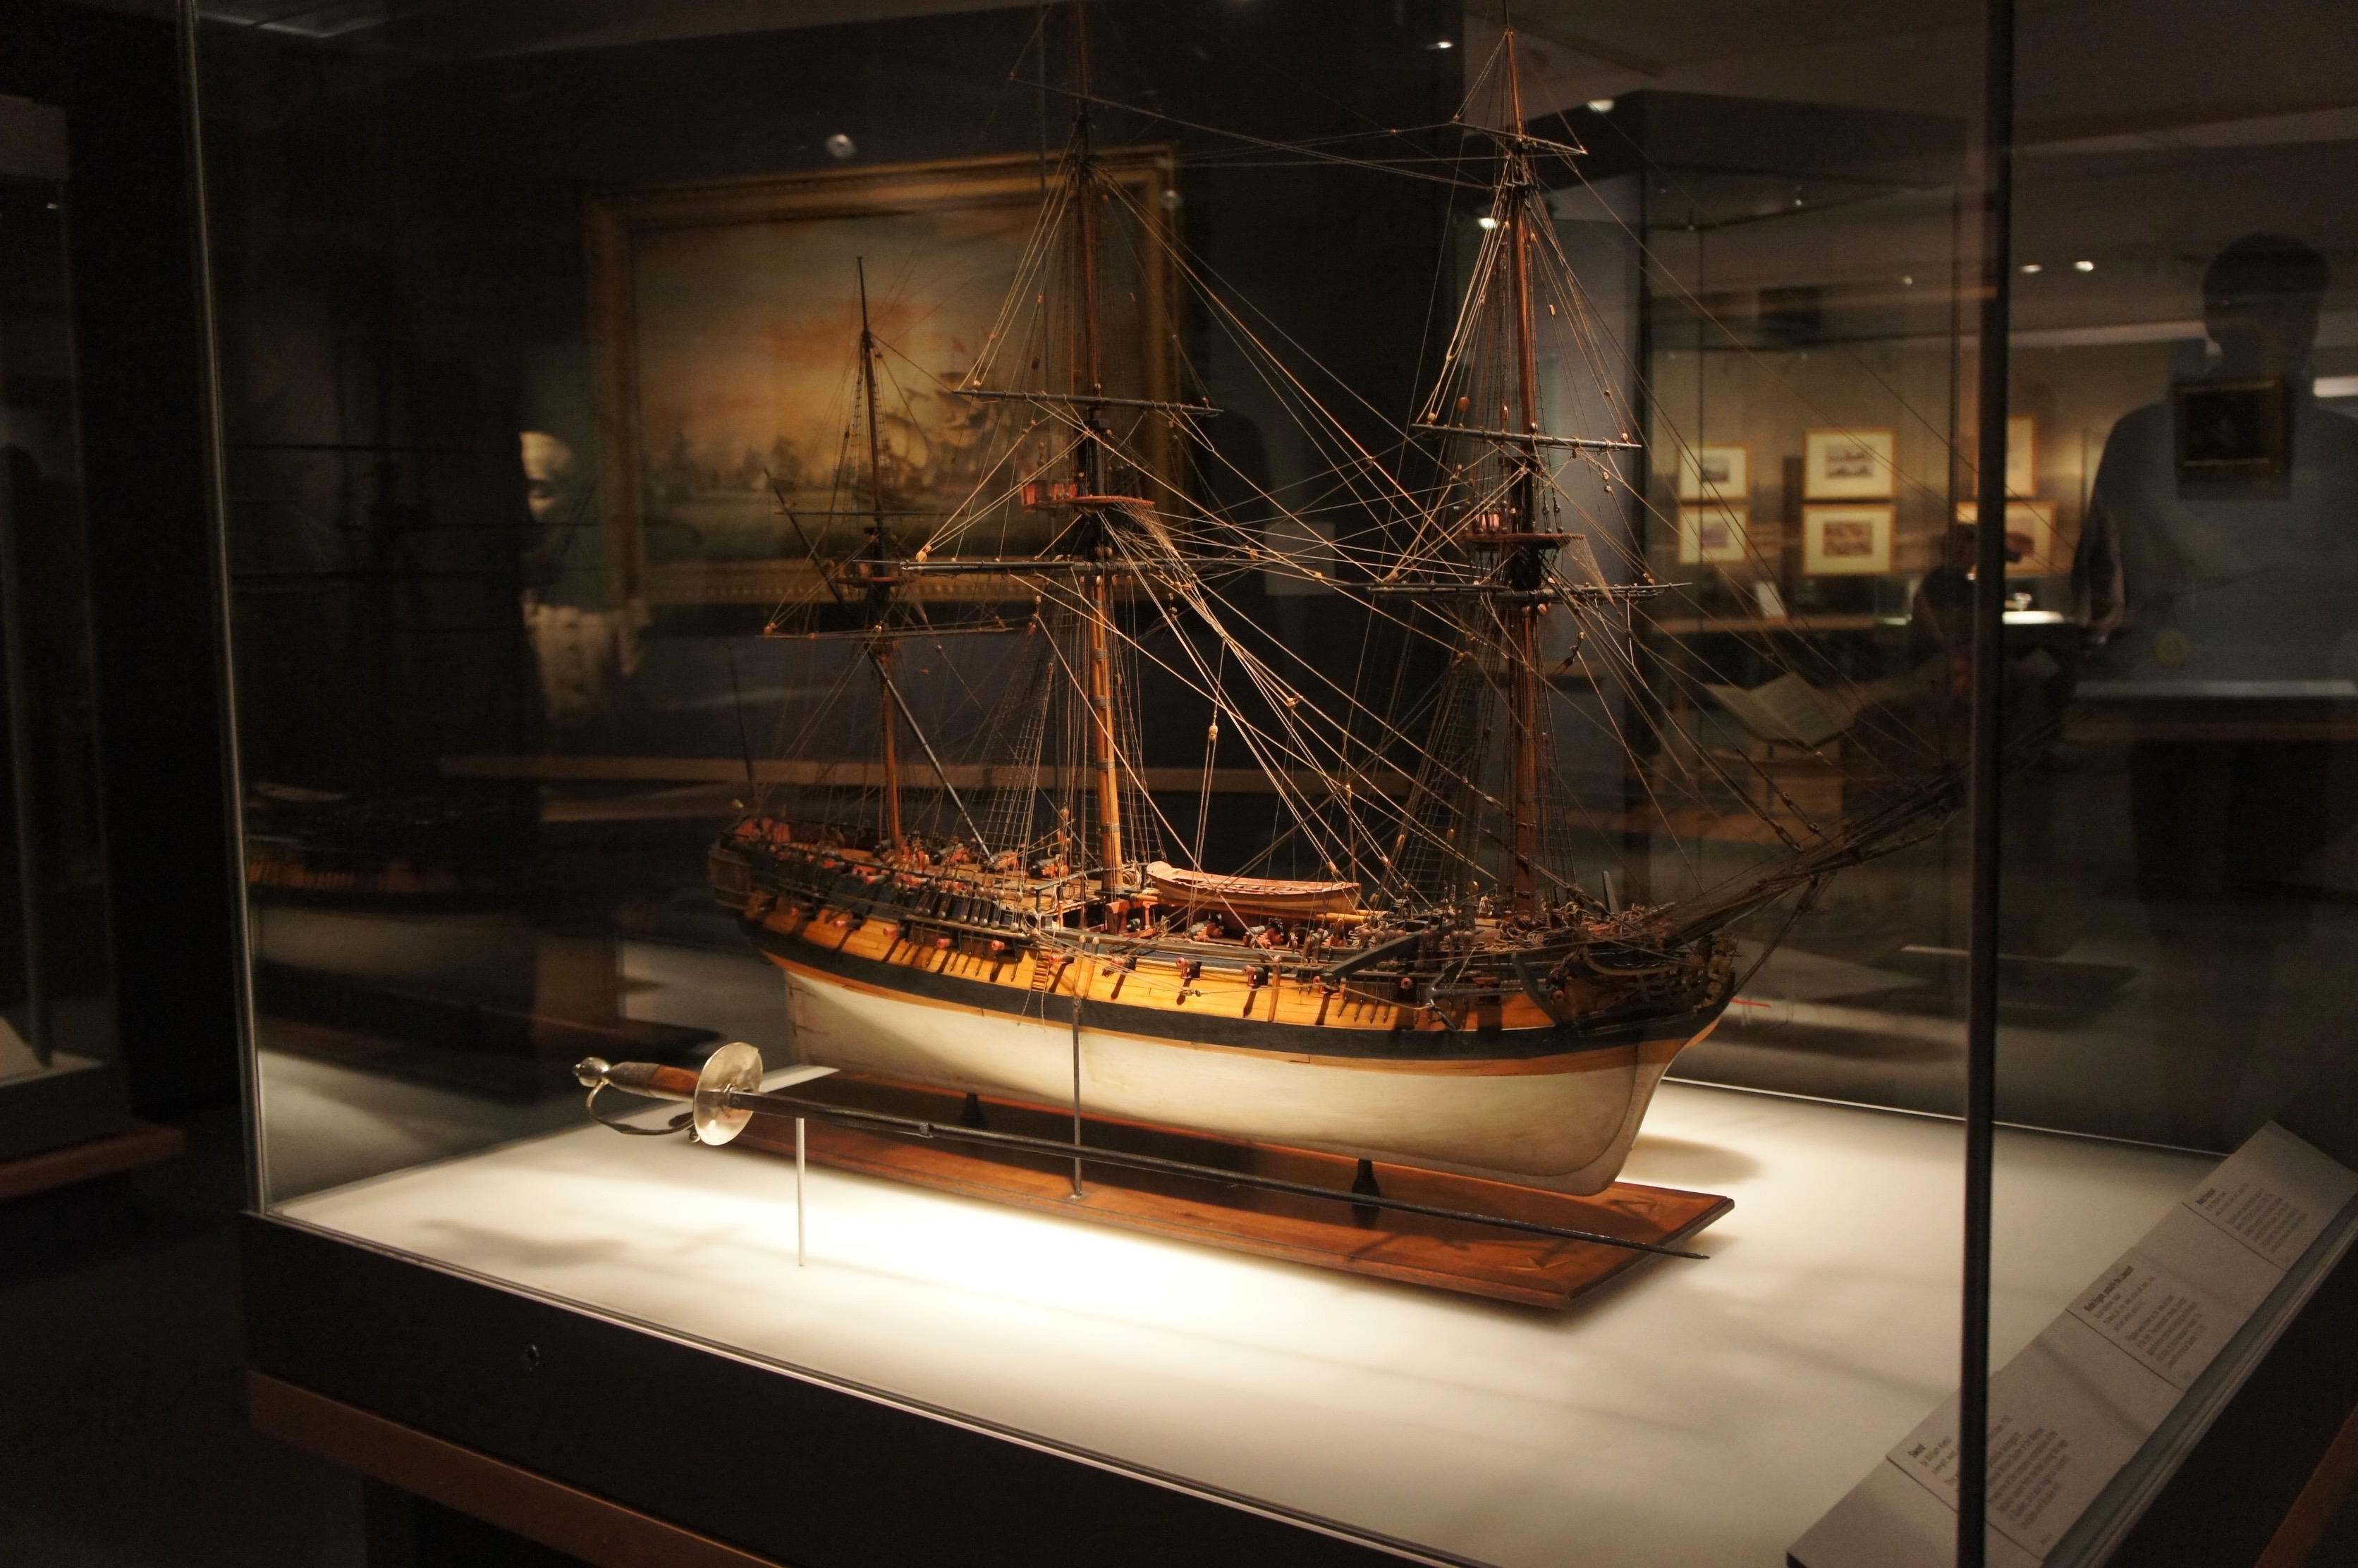 The Atlantic at The National Maritime Museum